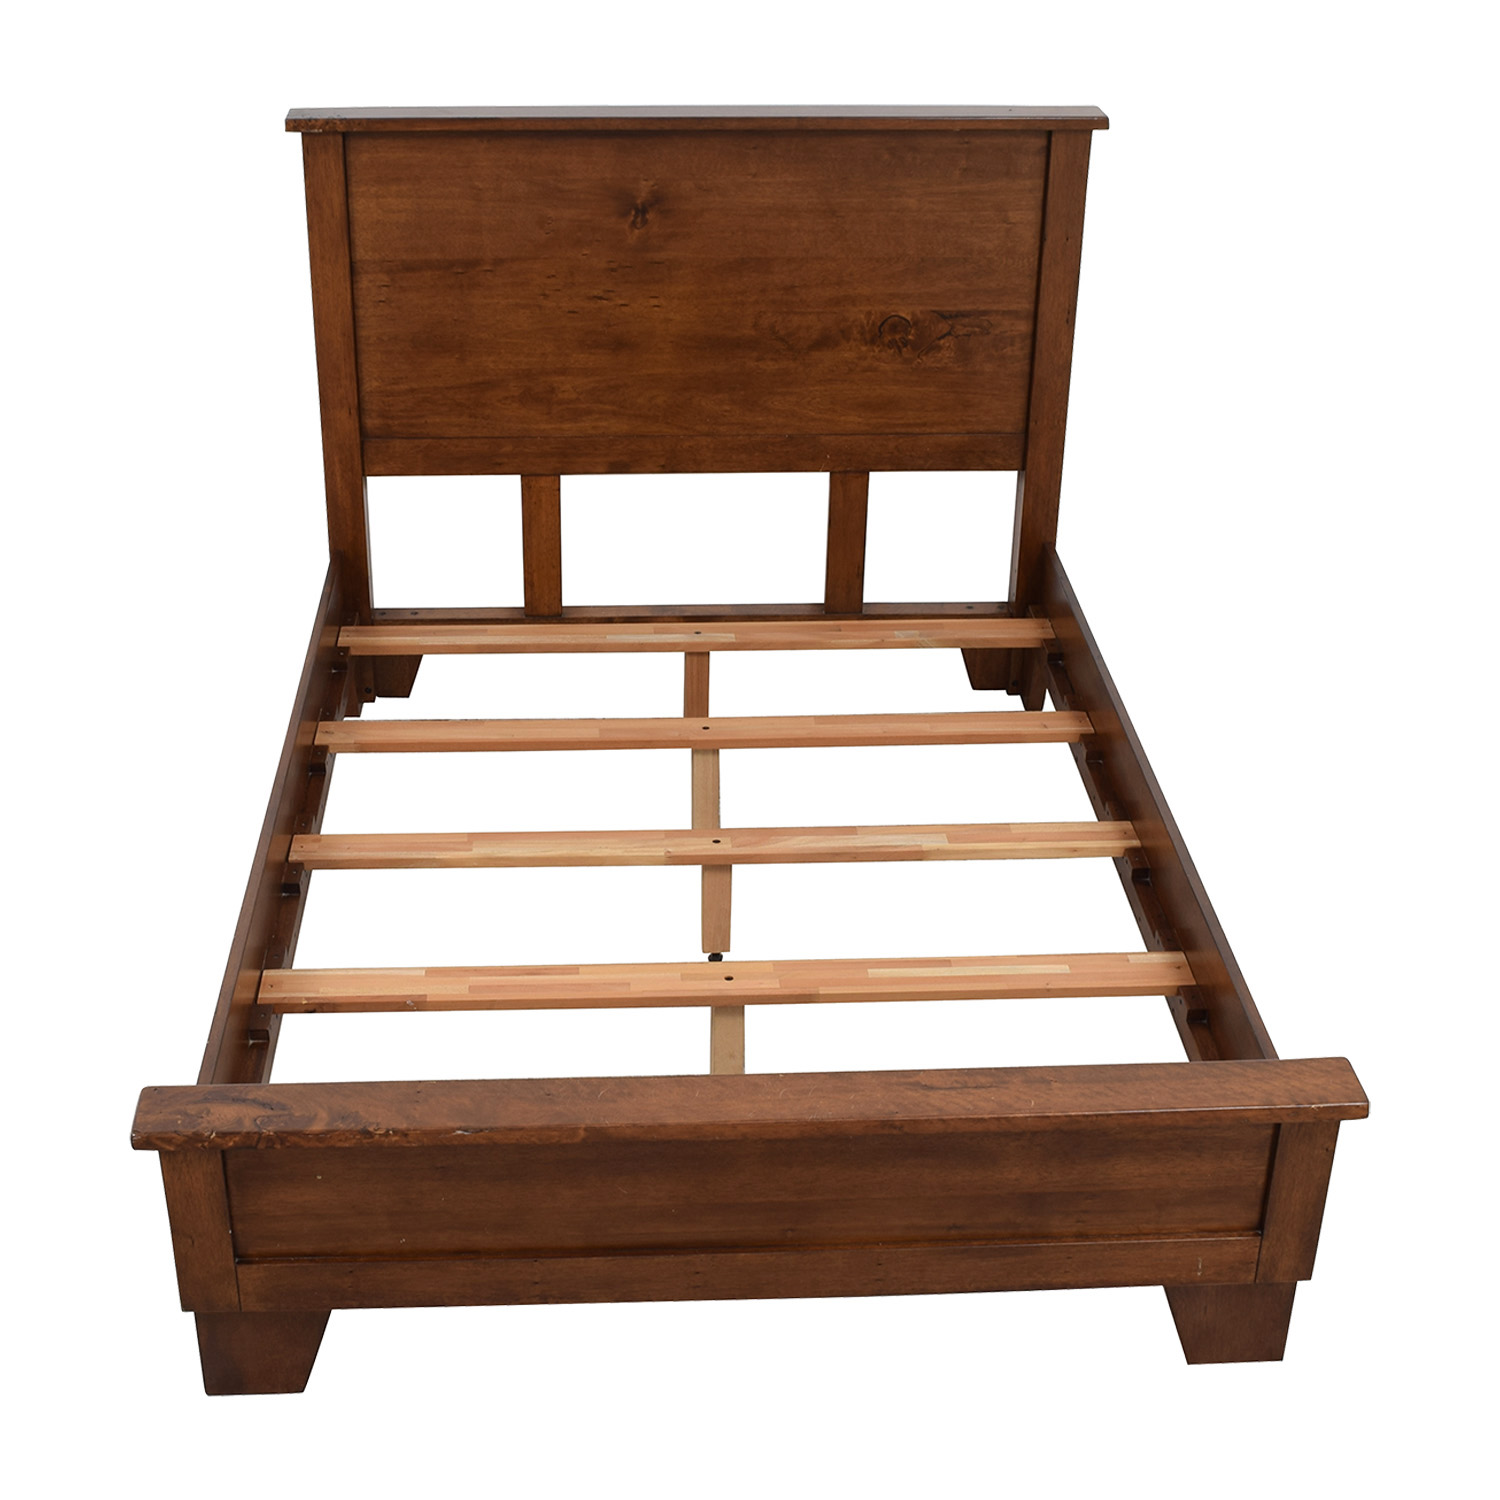 Pottery Barn Pottery Barn Sumatra Wood Full Bed Frame coupon